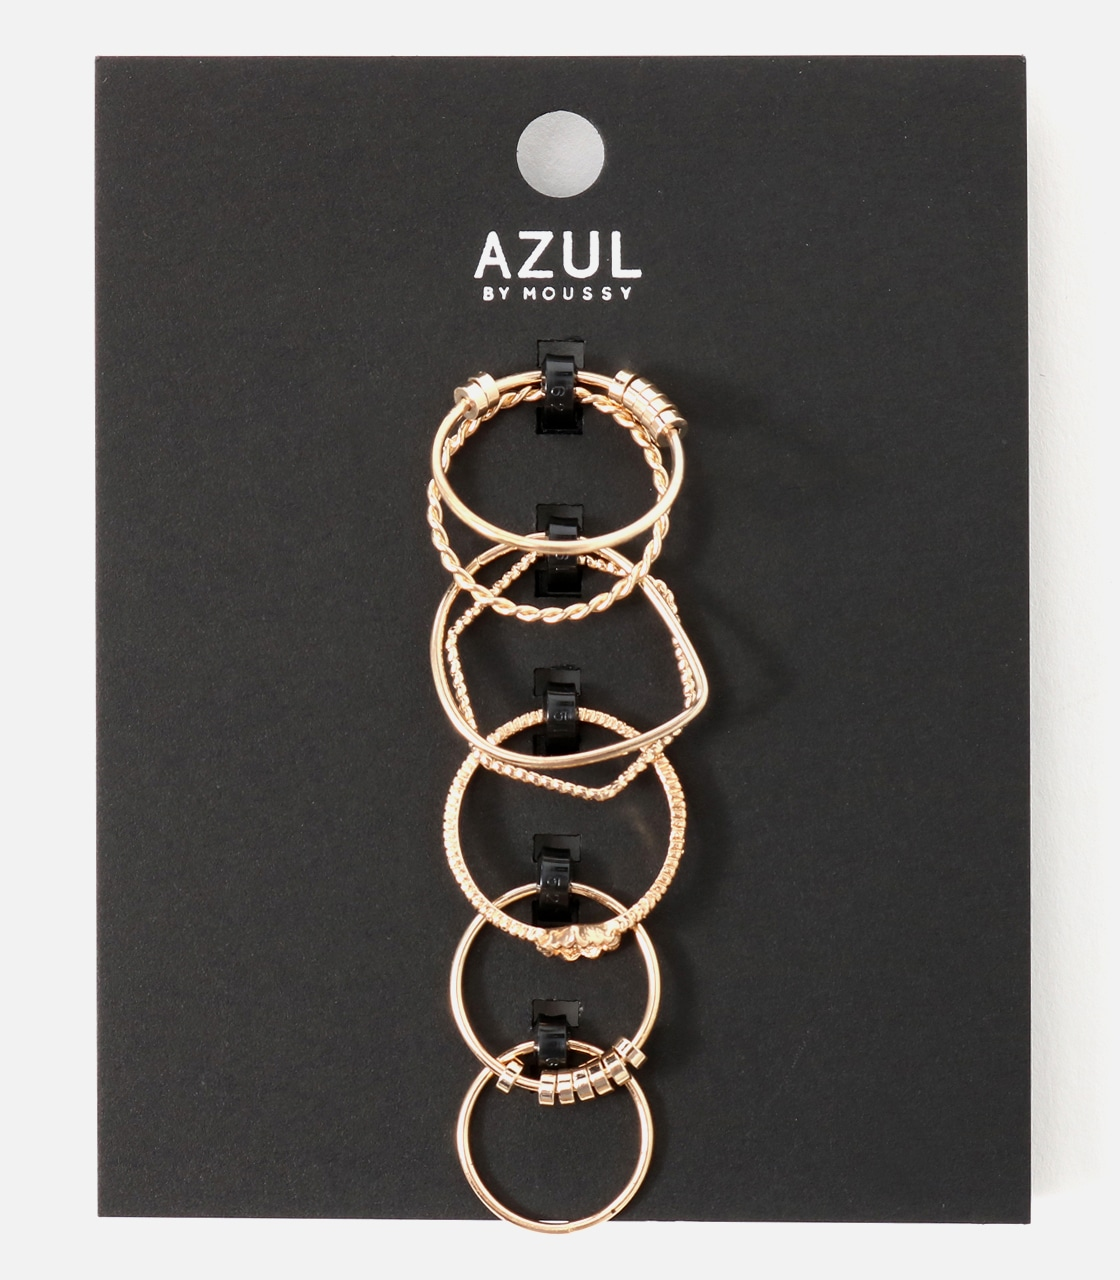 【AZUL BY MOUSSY】マルチモチーフ7本SETリング 詳細画像 L/GLD 1